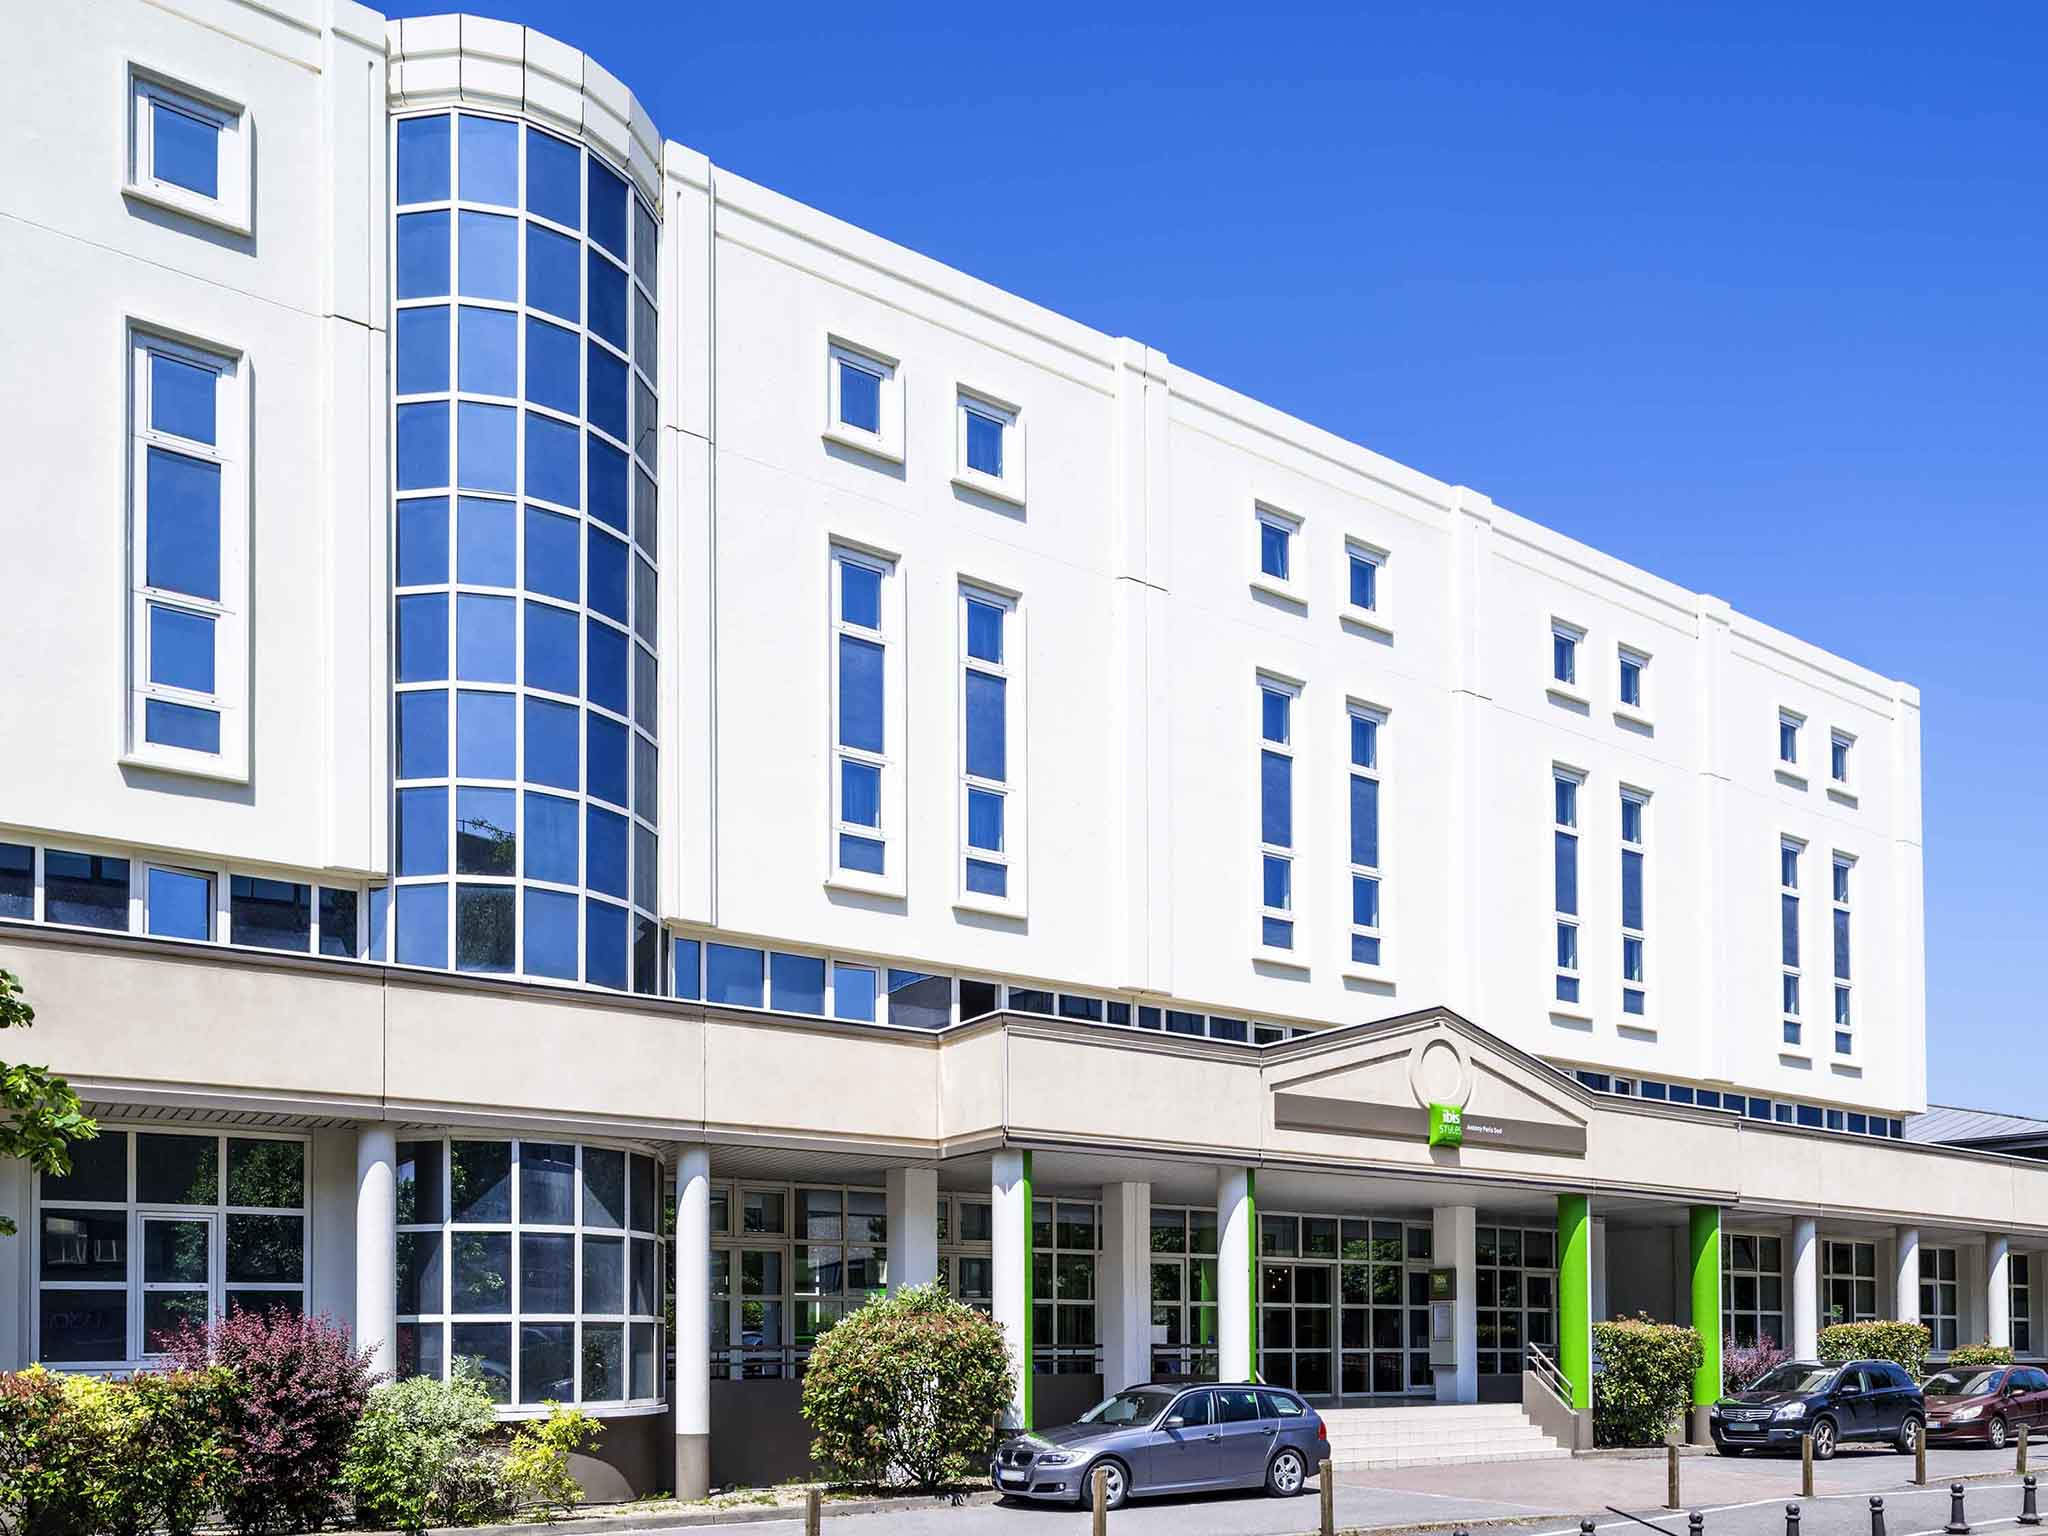 Hotel in antony ibis styles antony paris sud for Hotels orly sud